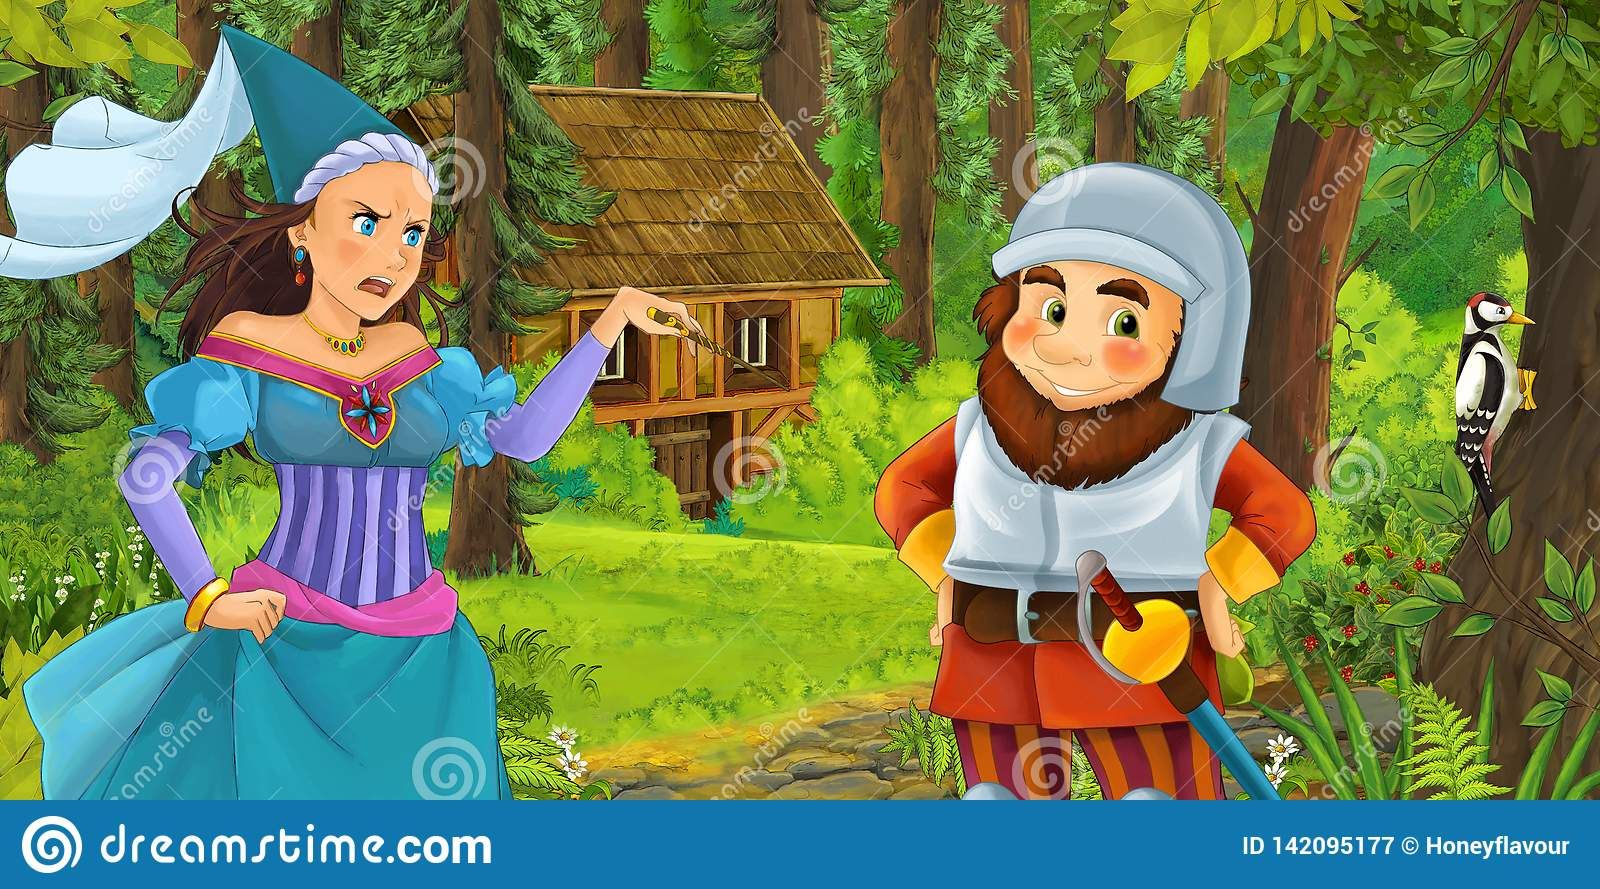 Cartoon scene with young dwarf prince traveling and encountering princess sorceress and hidden wooden house in the forest